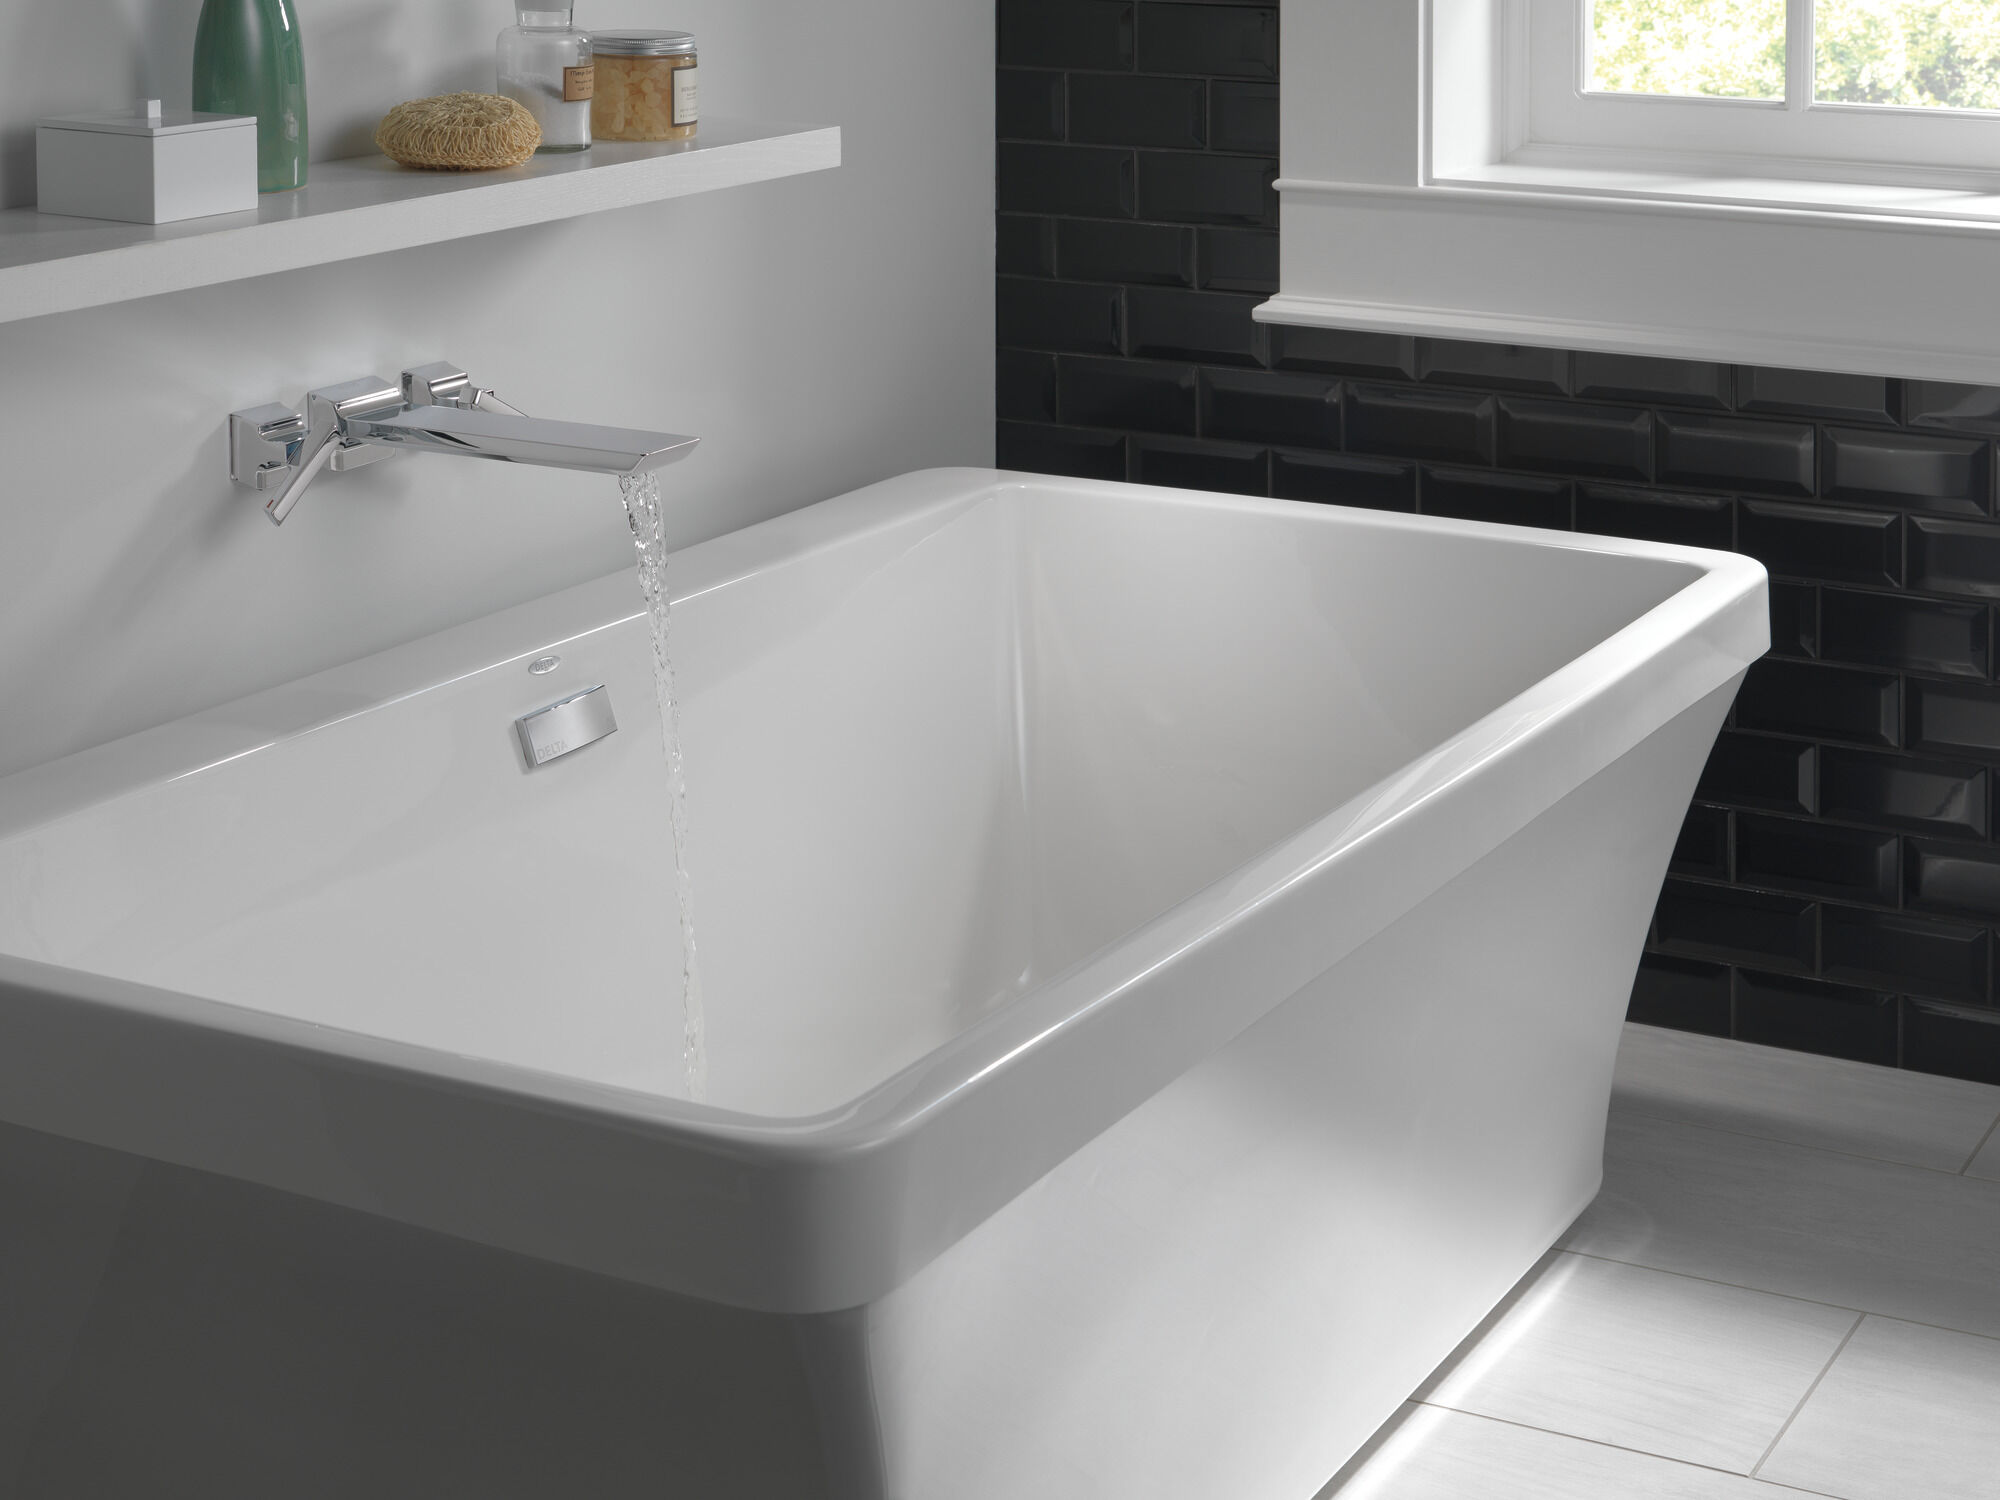 two handle wall mounted tub filler